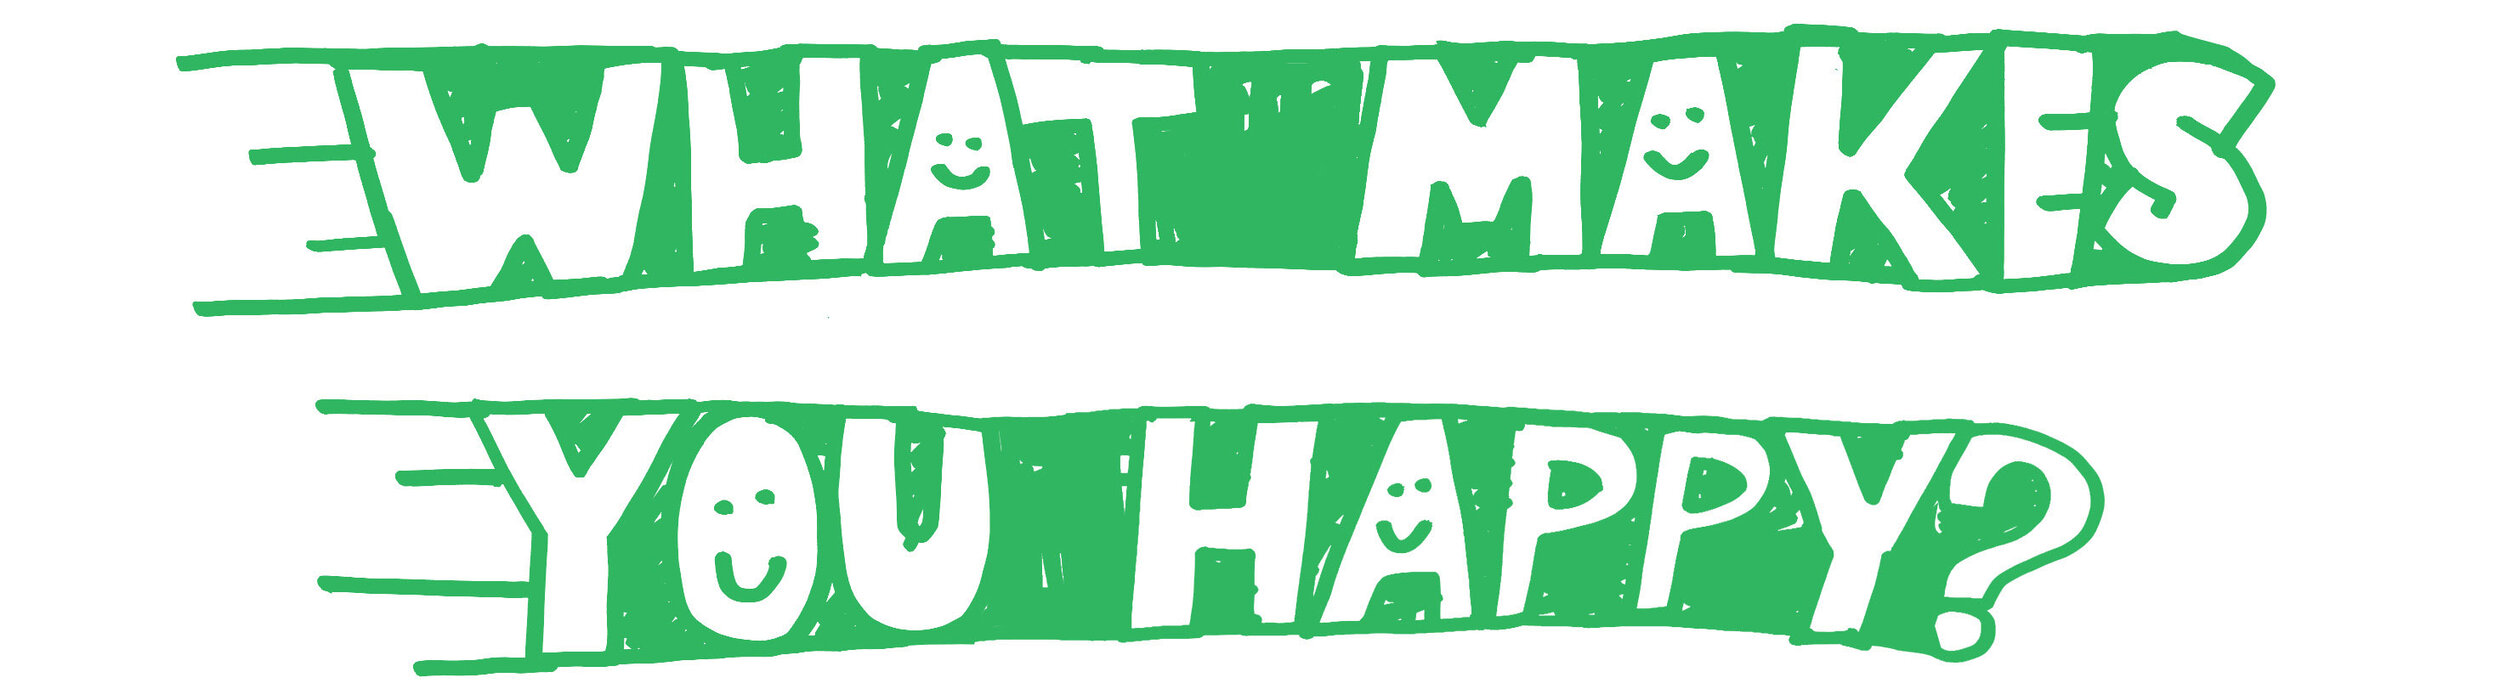 WHAT HAPPY YOU MAKES ?.jpg